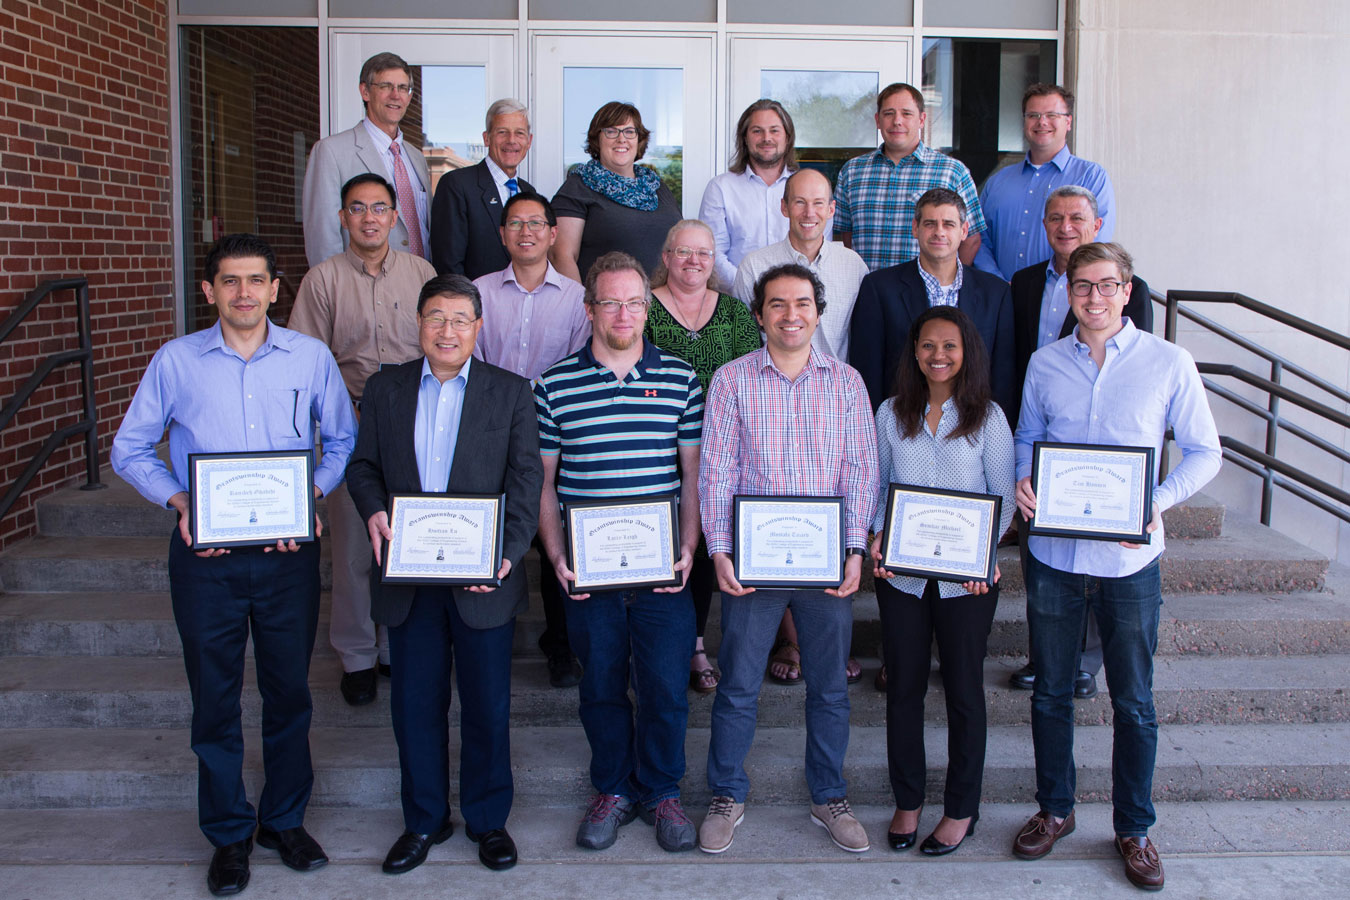 Faculty with Awards